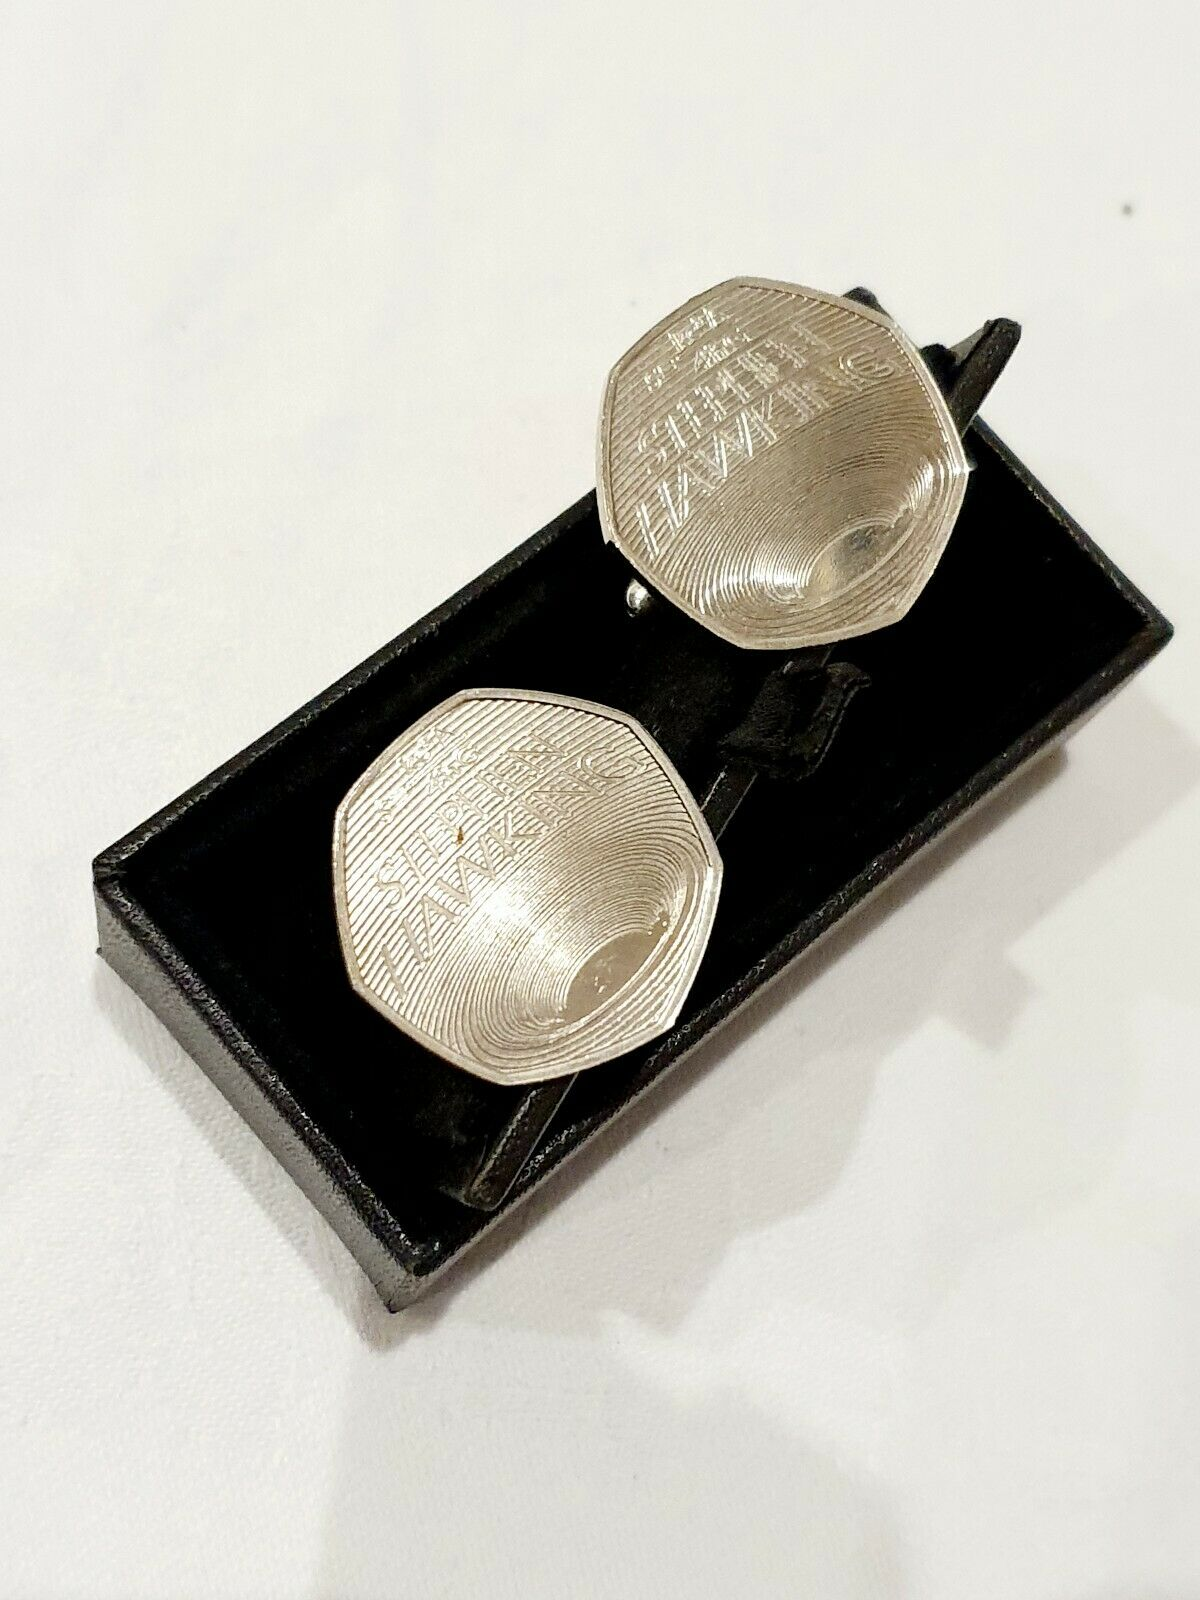 Stephen Hawkins Real 50p Cufflinks Boxed Very Rare Brand New RRP Royal Mint